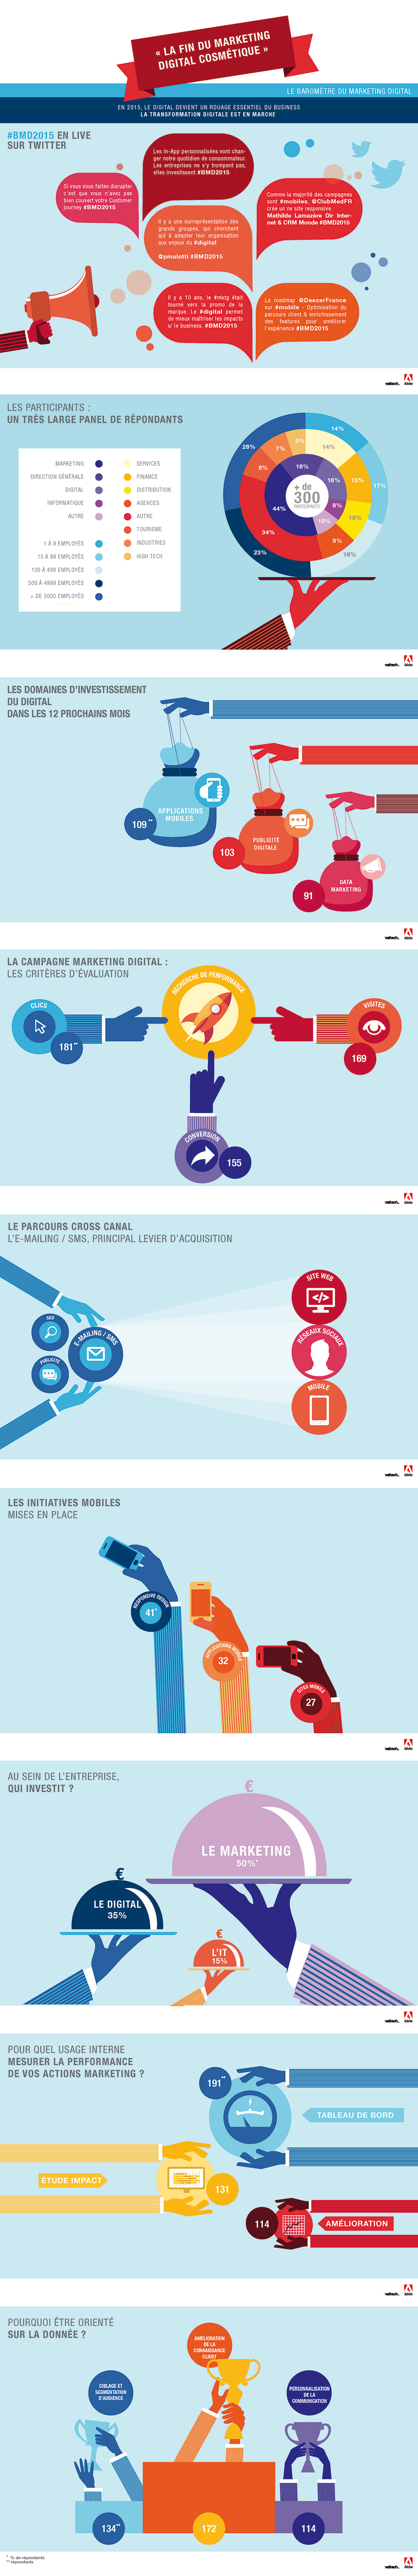 Infographie | Baromètre du Marketing Digital 2015 by Valtech et Adobe